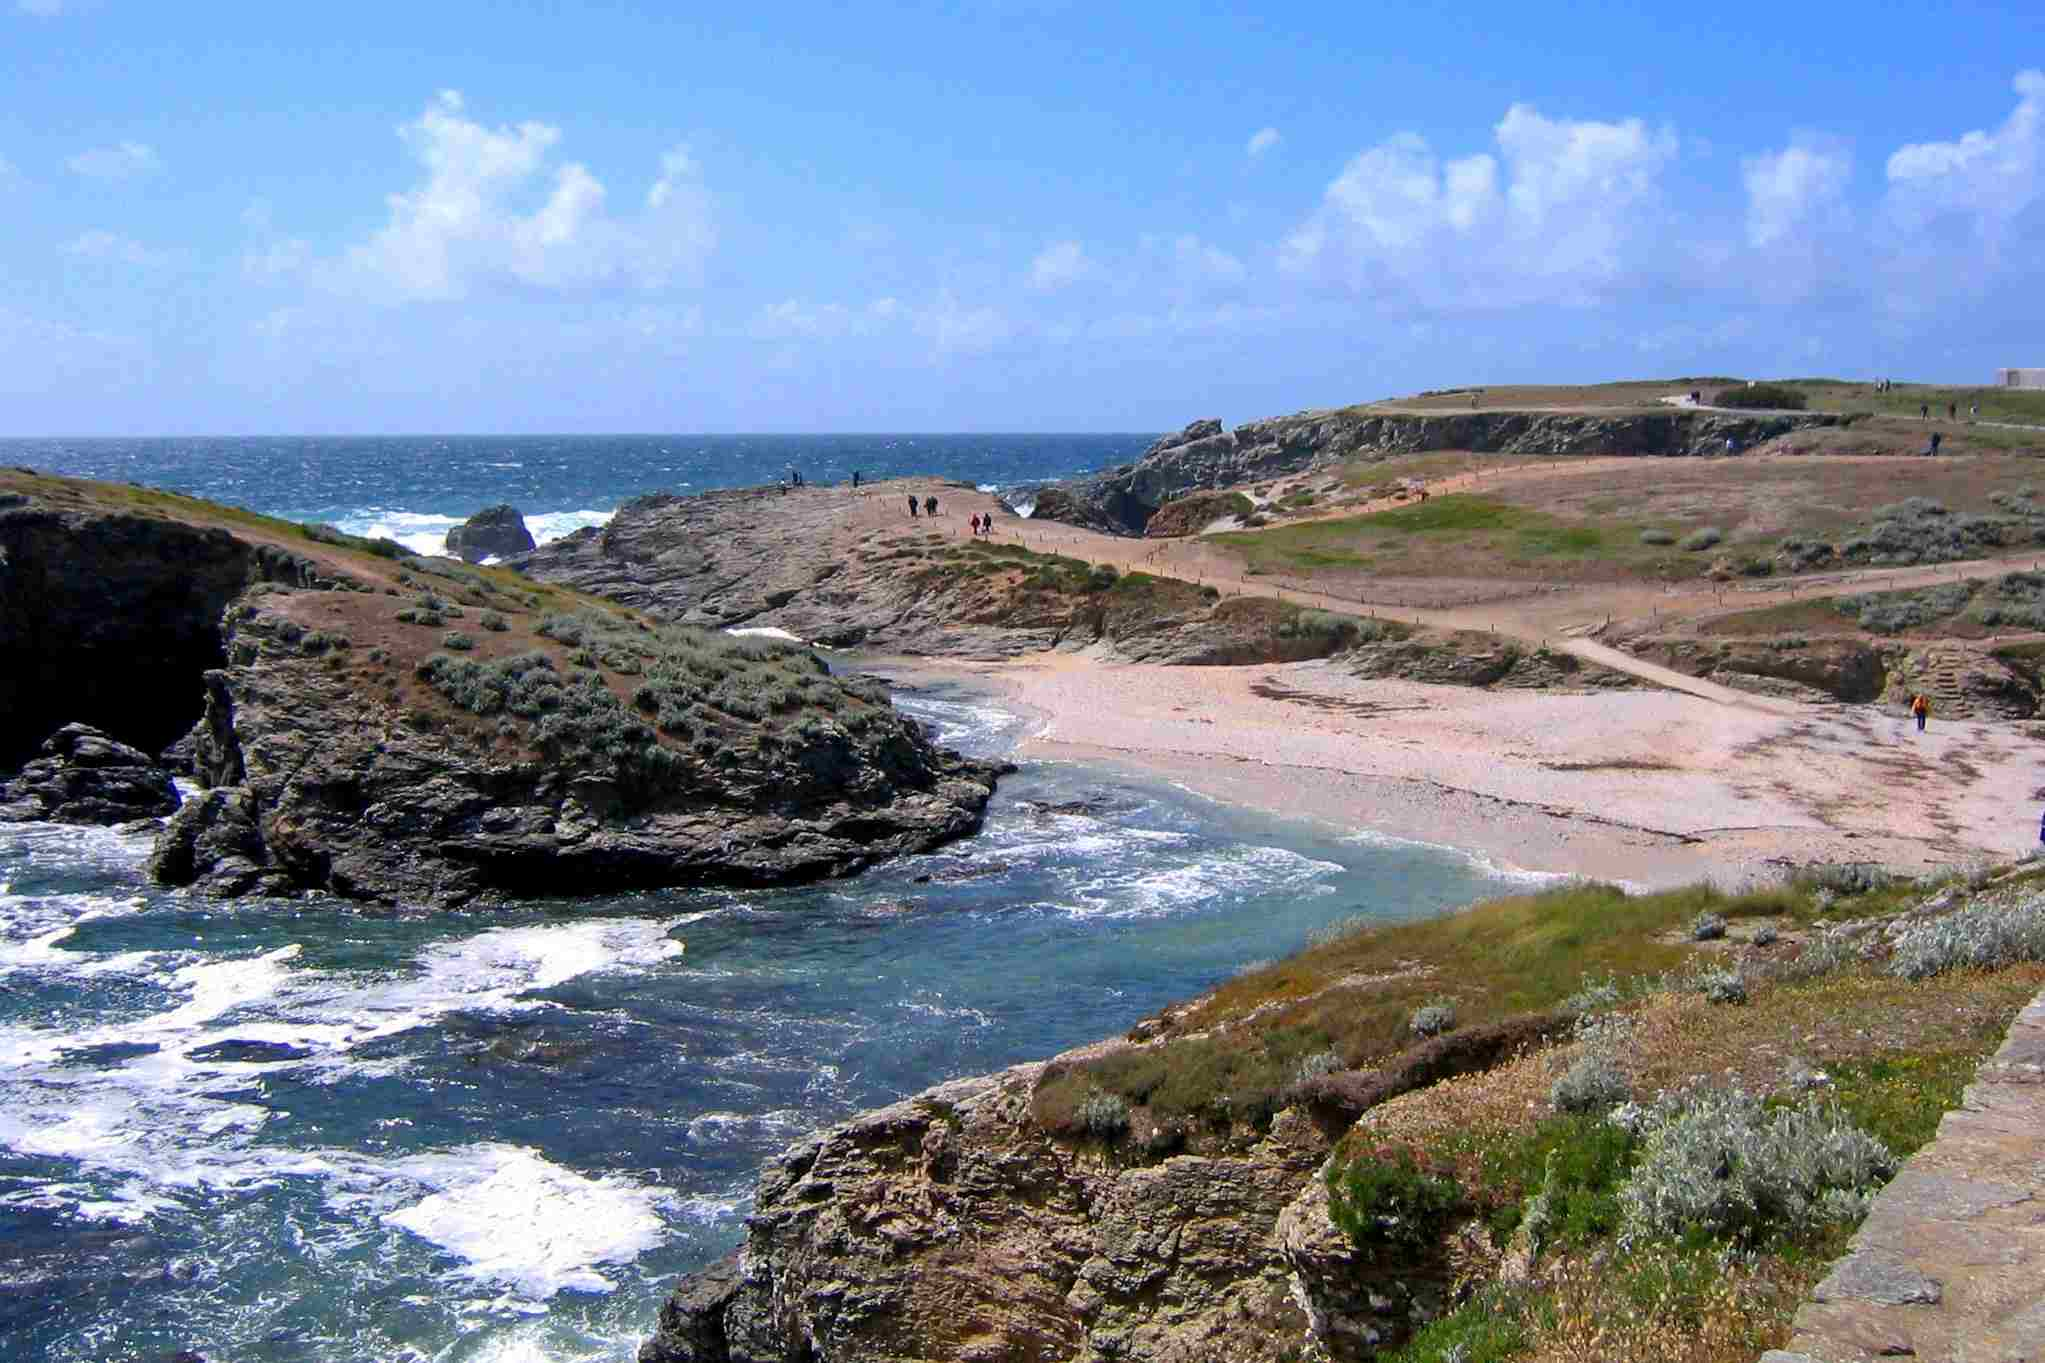 The coast of Belle-Ile, Brittany's largest island